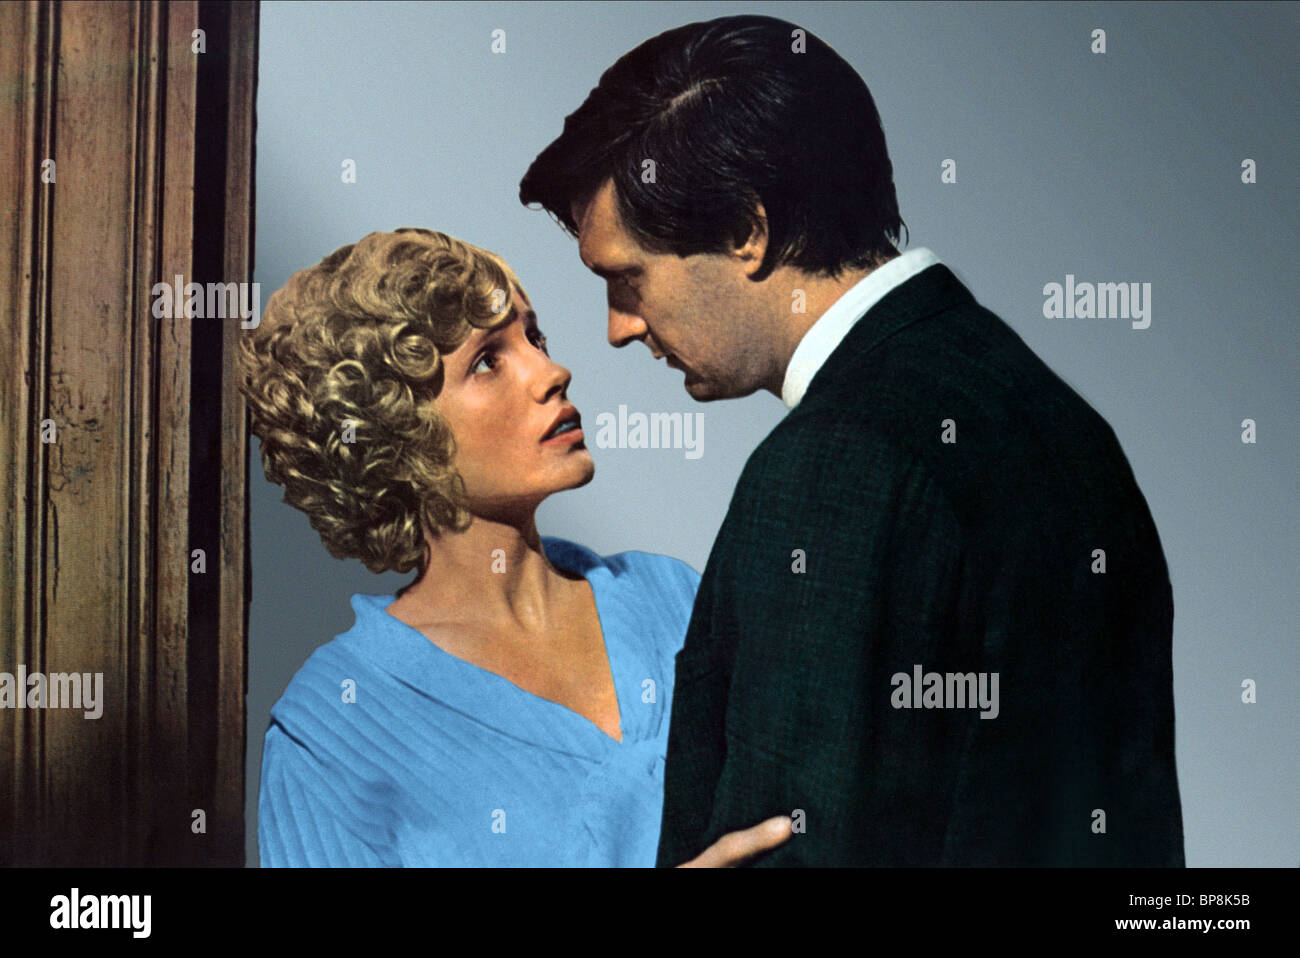 MELODIE JOHNSON, RICHARD WIDMARK, THE MOONSHINE WAR, 1970 - Stock Image